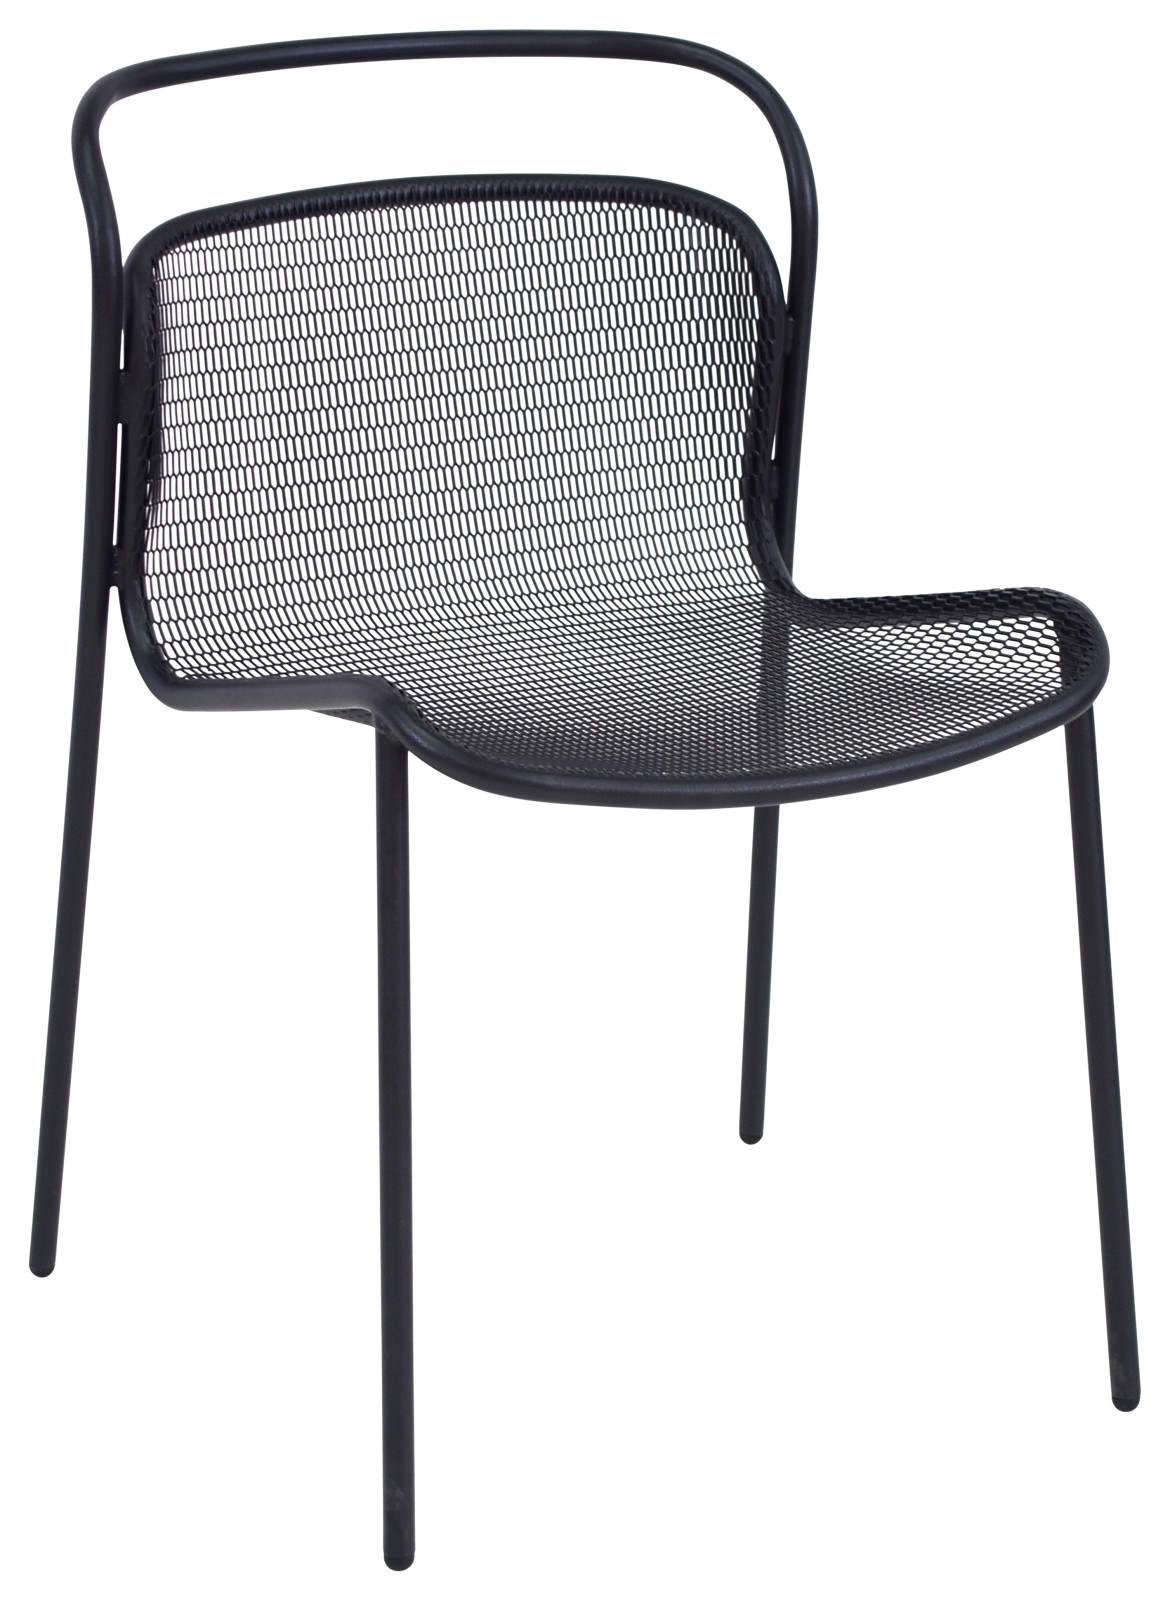 Modern Dining Chair - Set of 4 Black 24